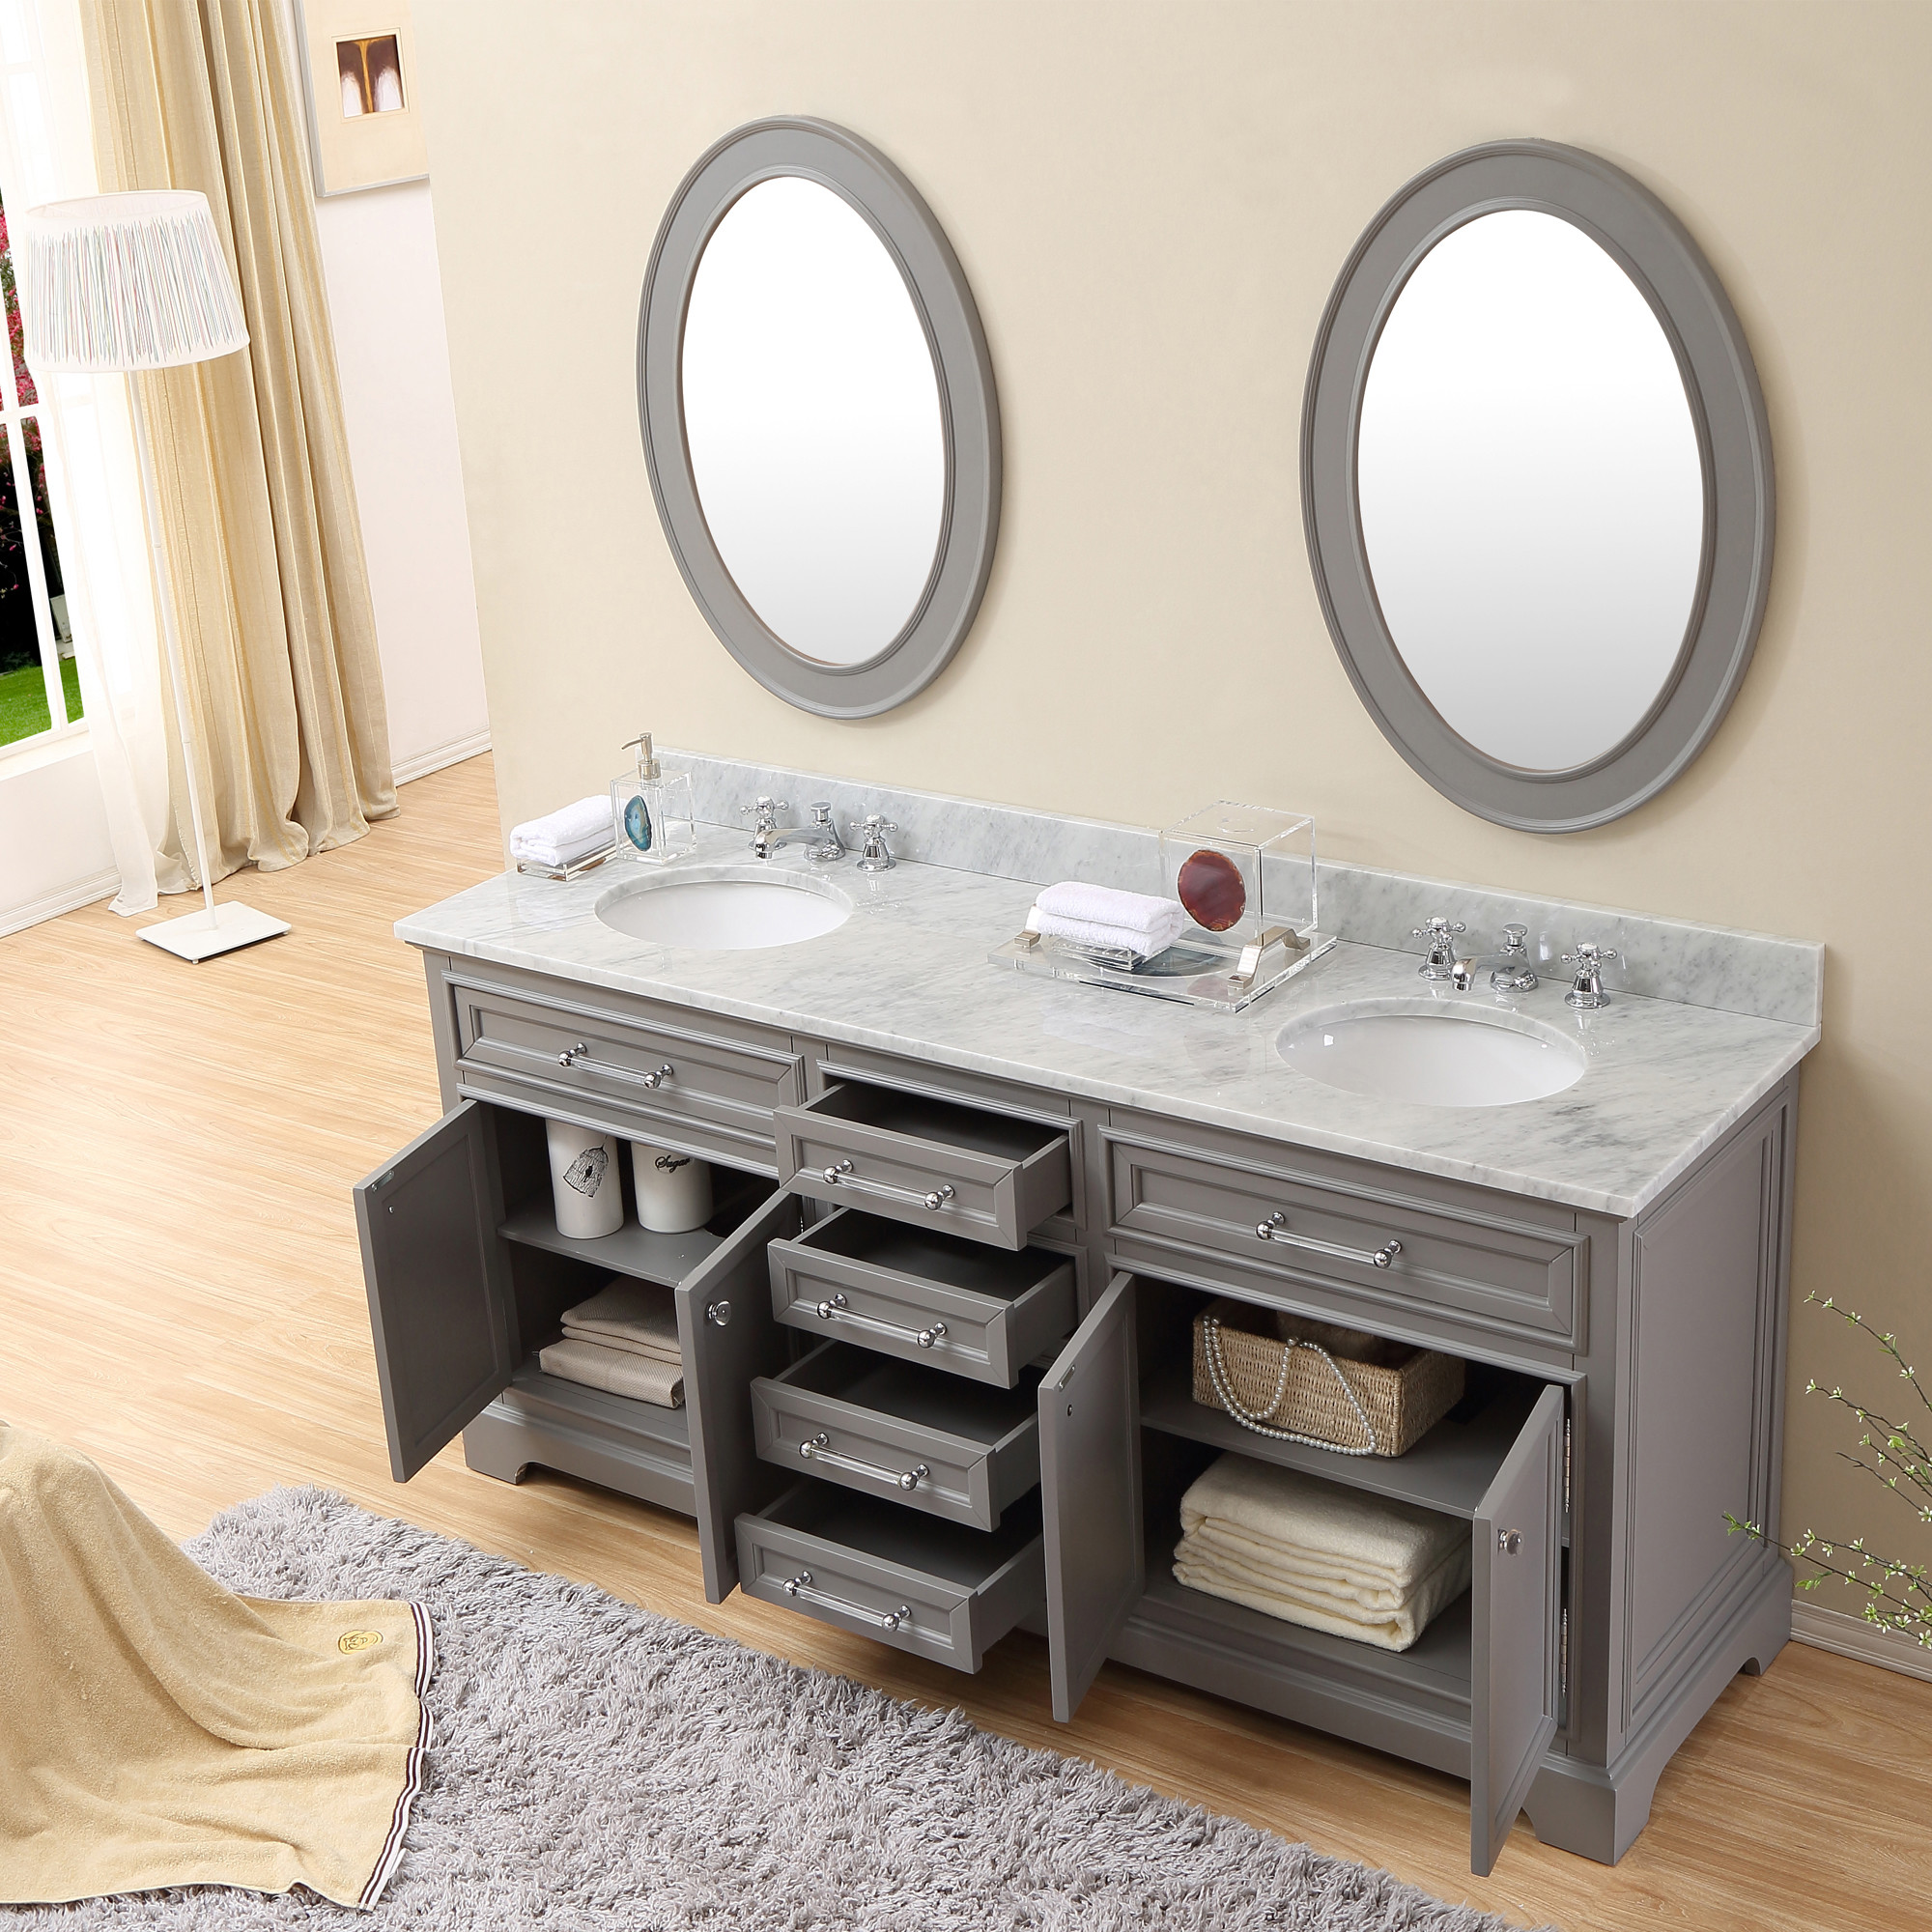 sink product today saturn stufurhome vanity inch home double free overstock shipping garden bathroom